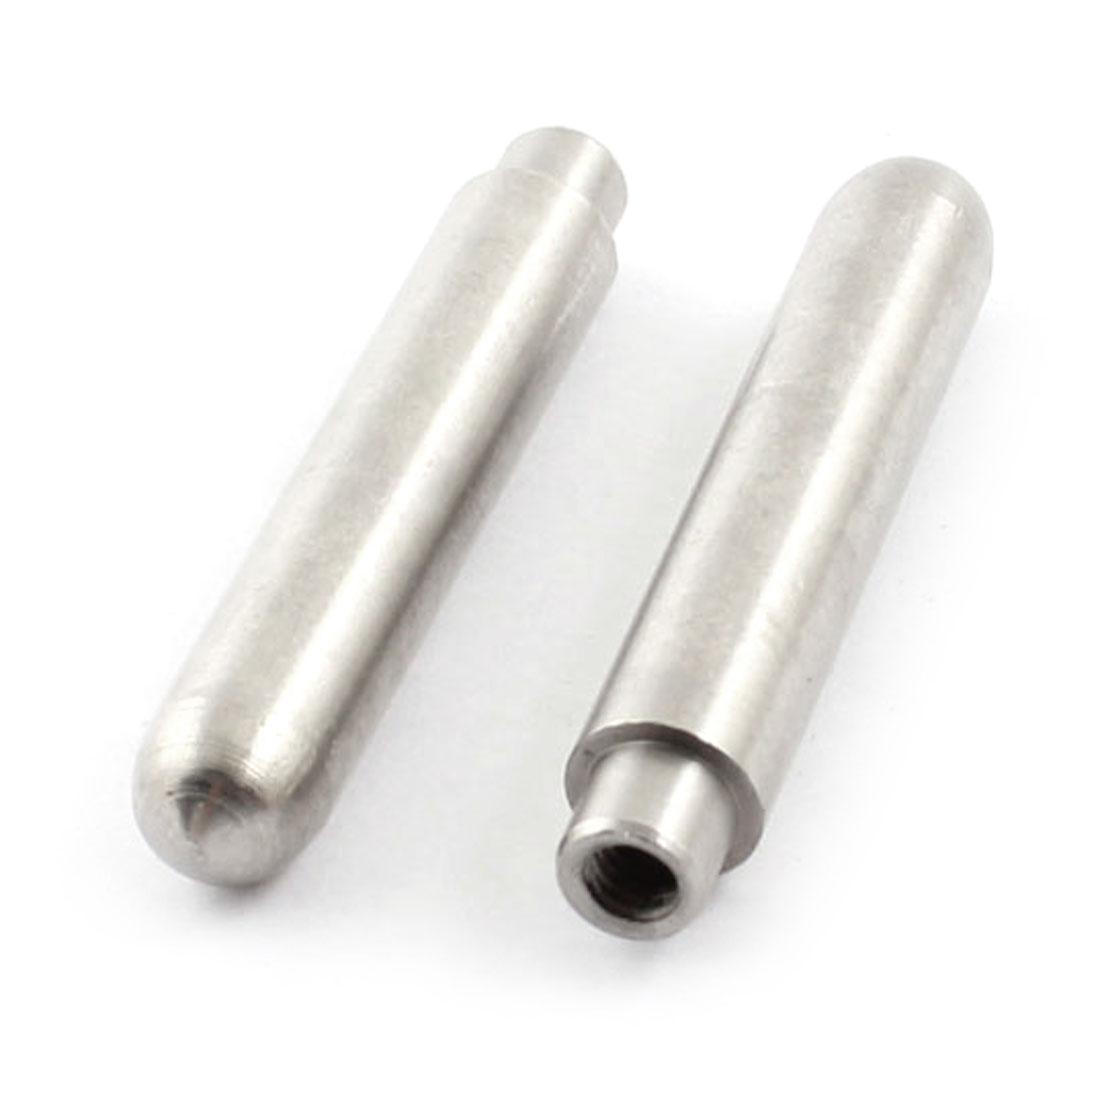 2 Pcs 4mm Female Thread Gray Mold Guide Hole Pillar Involution Accuracy 45mm x 8mm